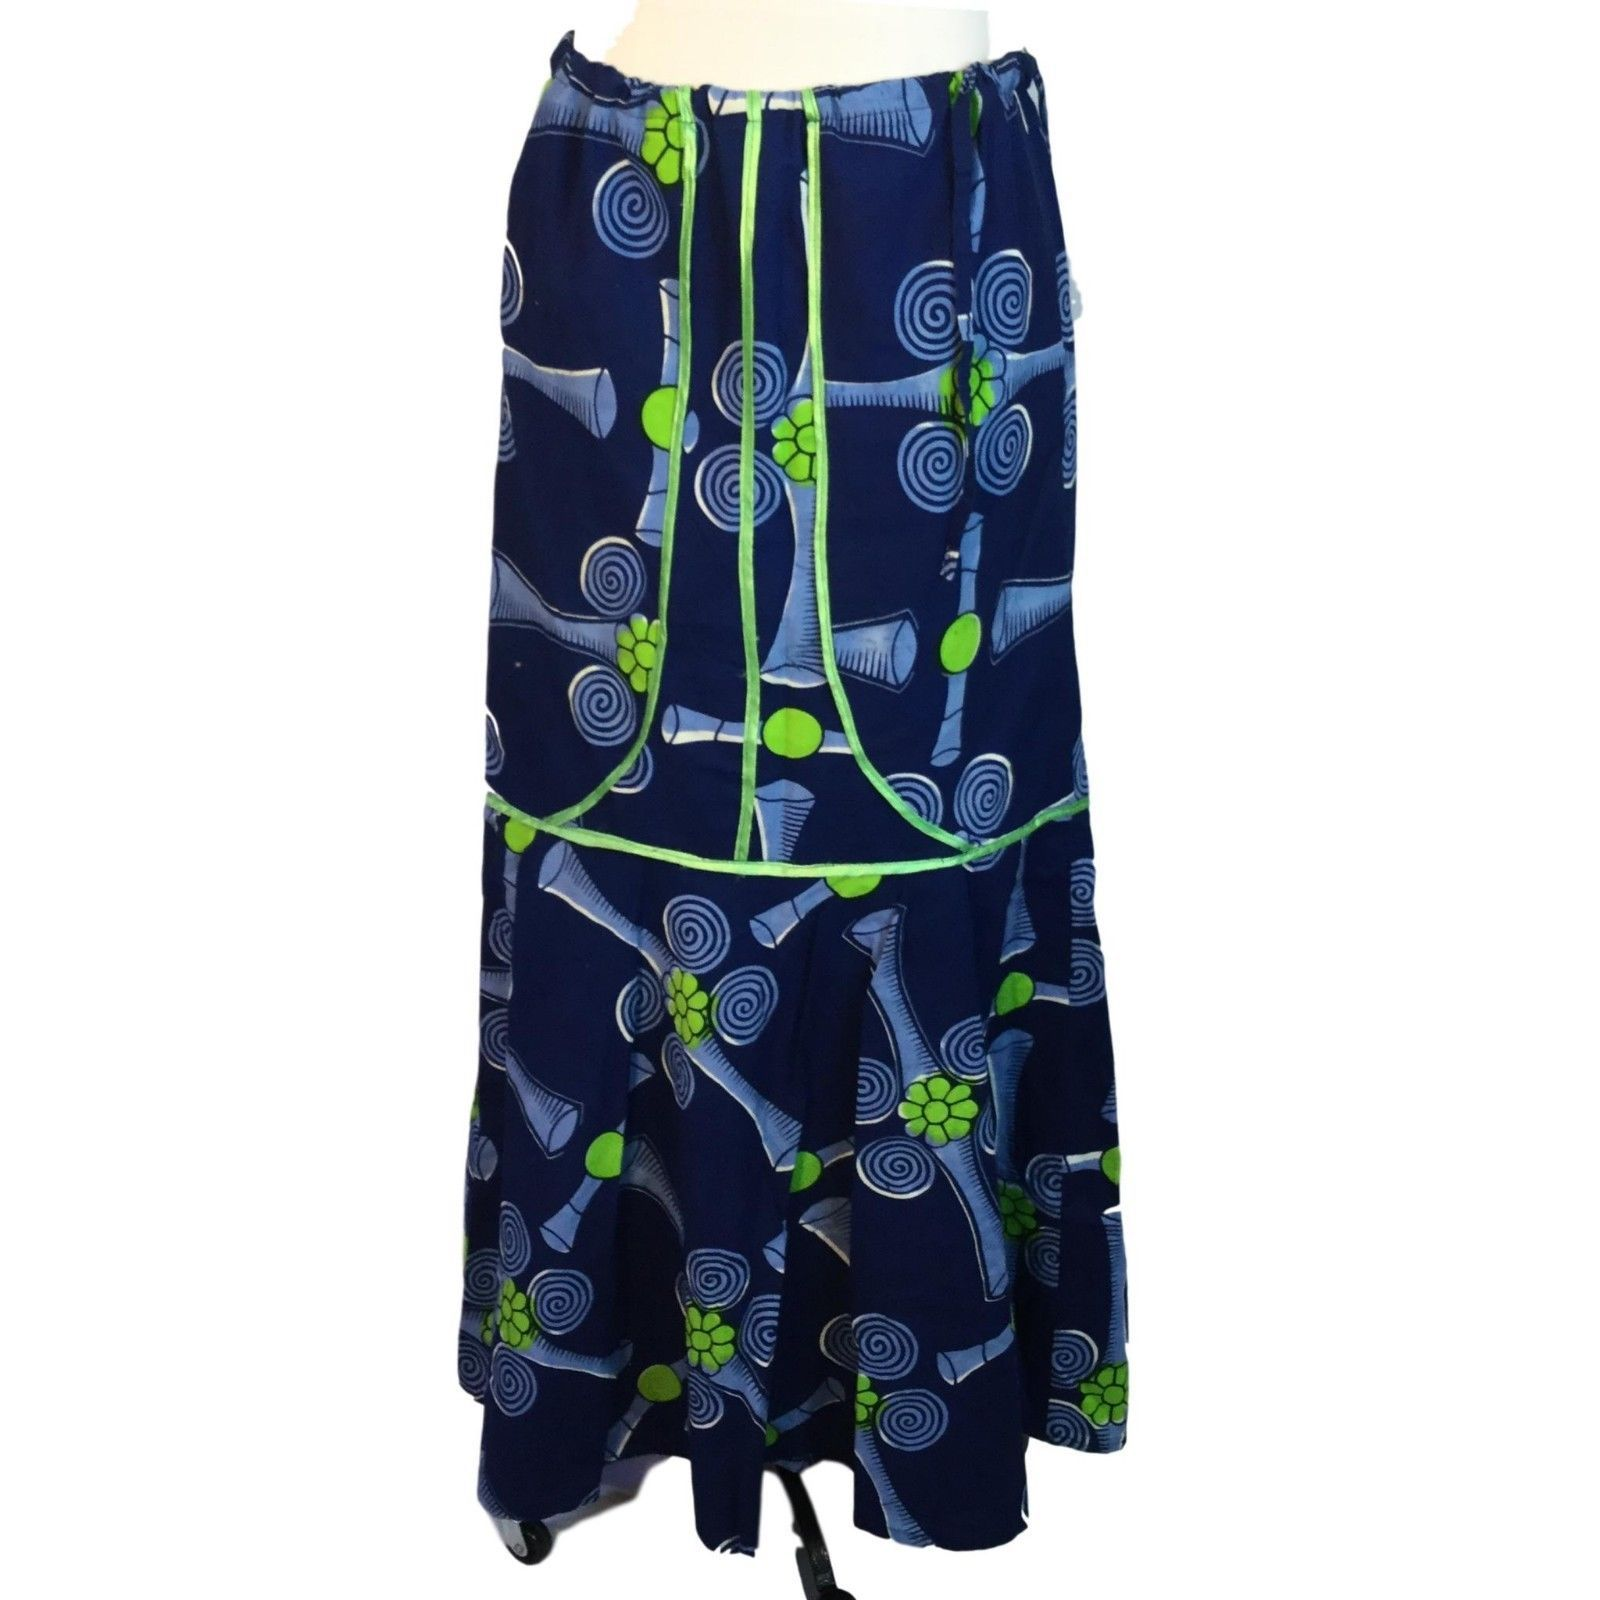 Traditional African Mermaid Drawstring Waist Skirt Top Boho Vibrant Print M / L